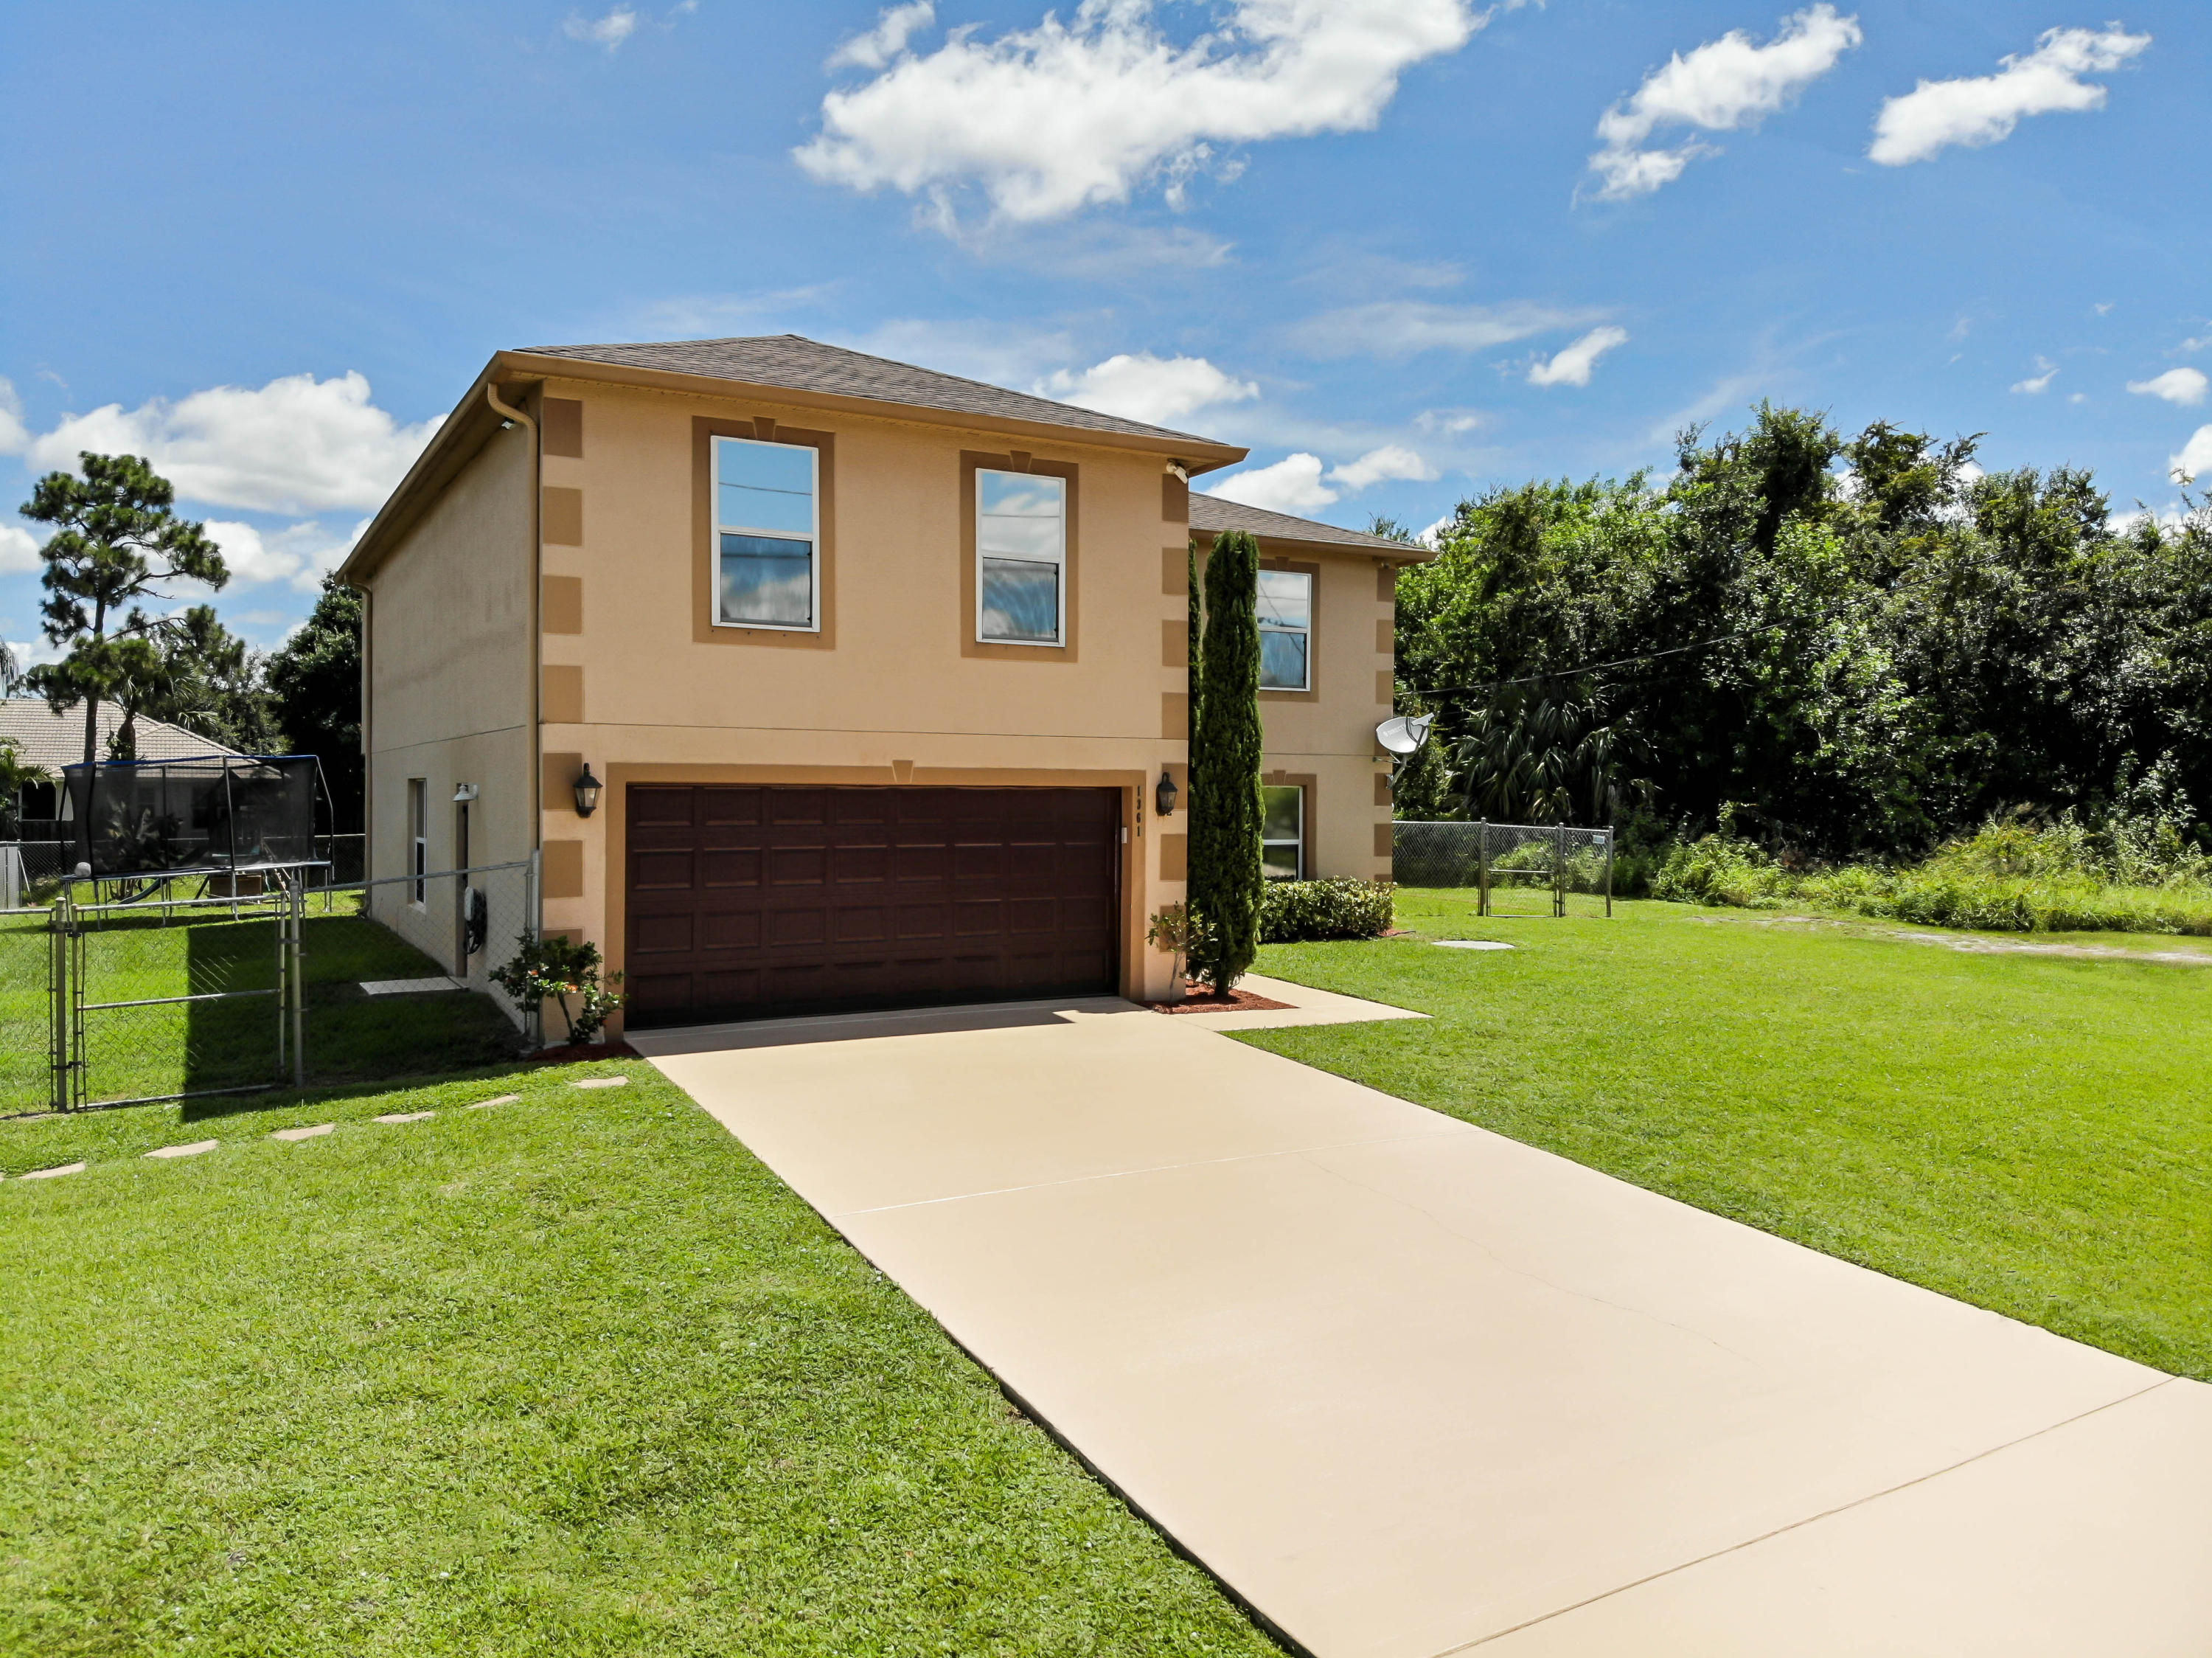 PORT ST LUCIE-SECTION 12- BLK 1307 LOT 15 (MAP 43/12N) (OR 2084-2050)